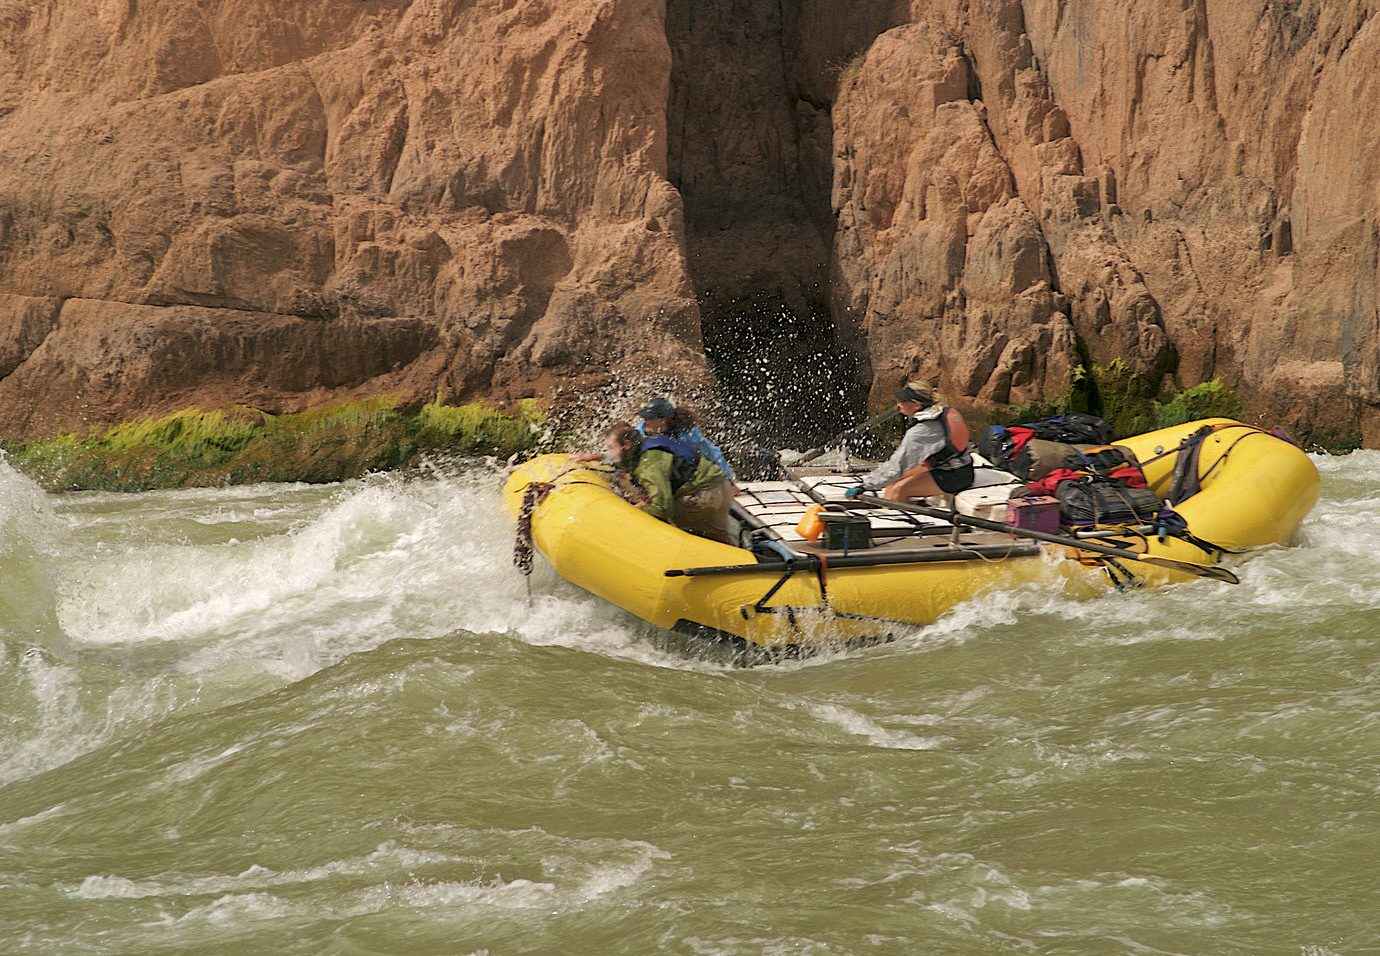 Adventure Countryside Historic Landmarks landscape national park Natural wonders Nature Outdoor Activities Outdoors Raft River Sport Trip Ideas western mountain outdoor rafting yellow water sport sports rapid recreation outdoor recreation boating extreme sport